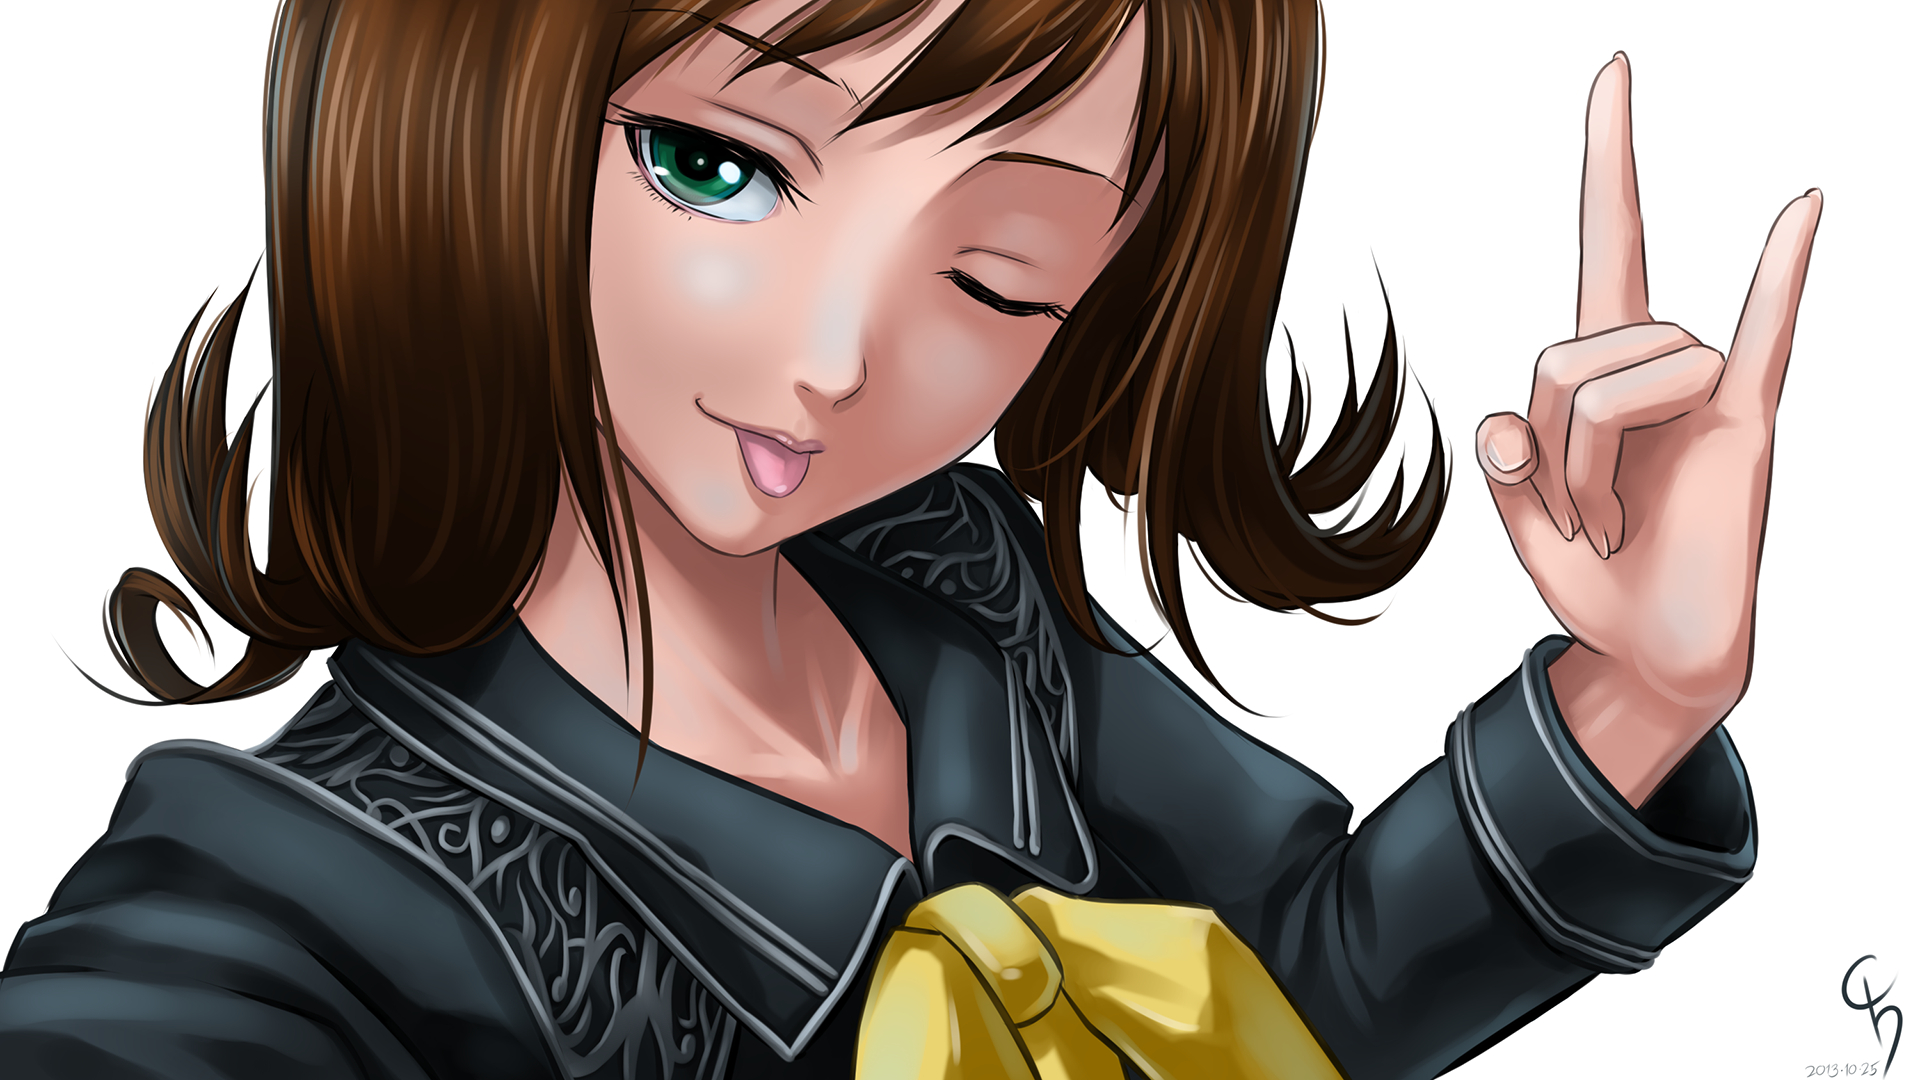 Selphie Tilmitt Final Fantasy Viii Hd Wallpaper 1832123